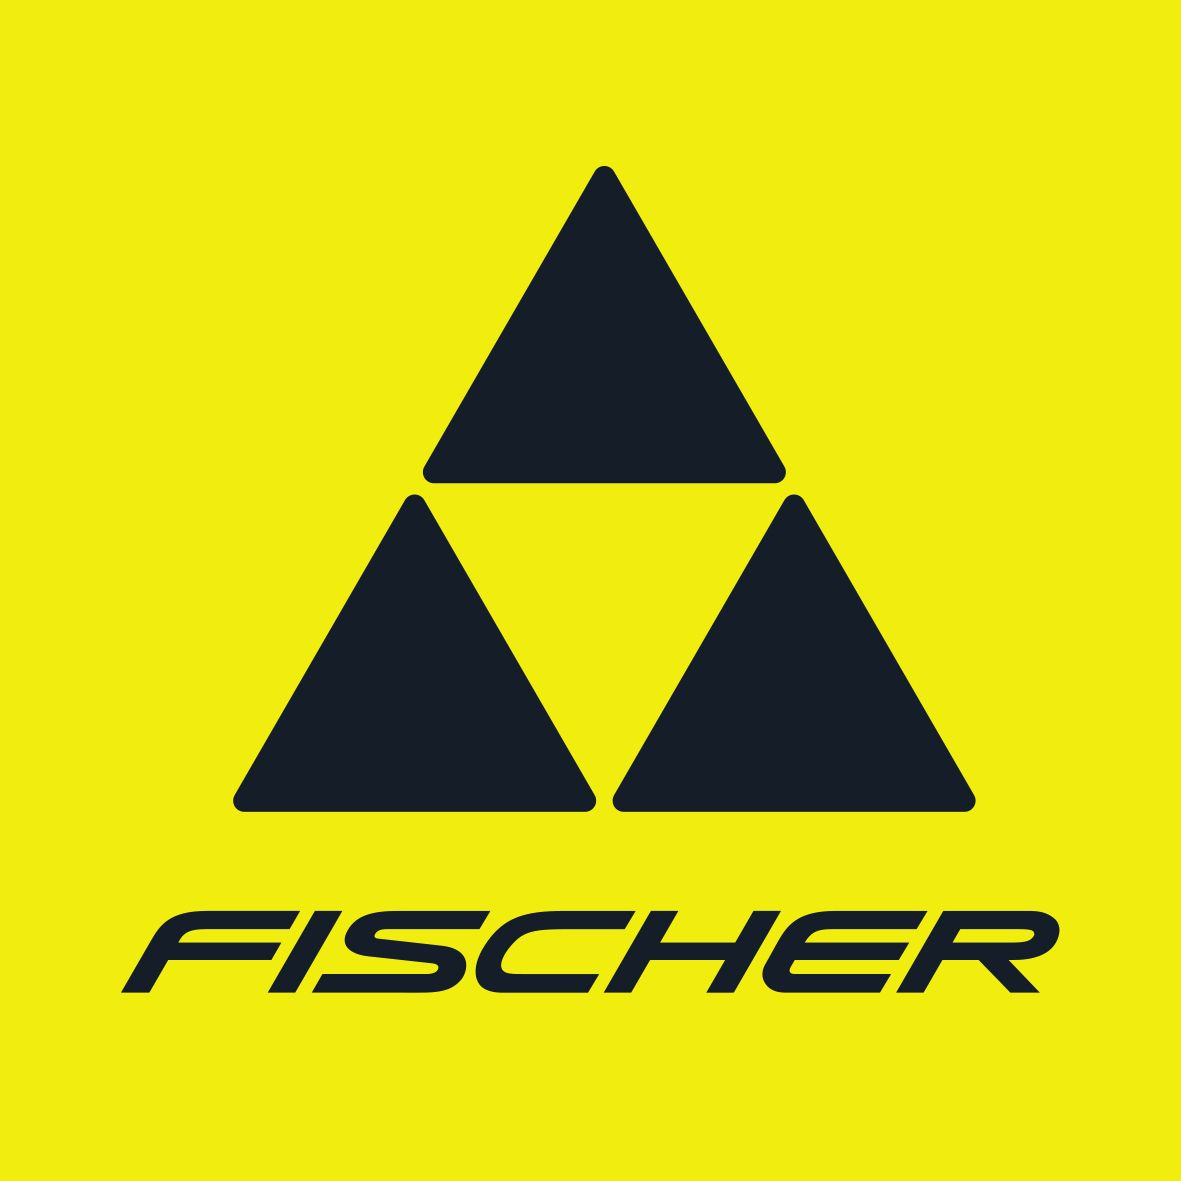 Silver C Yellow Triangle Logo - Fischer (company)